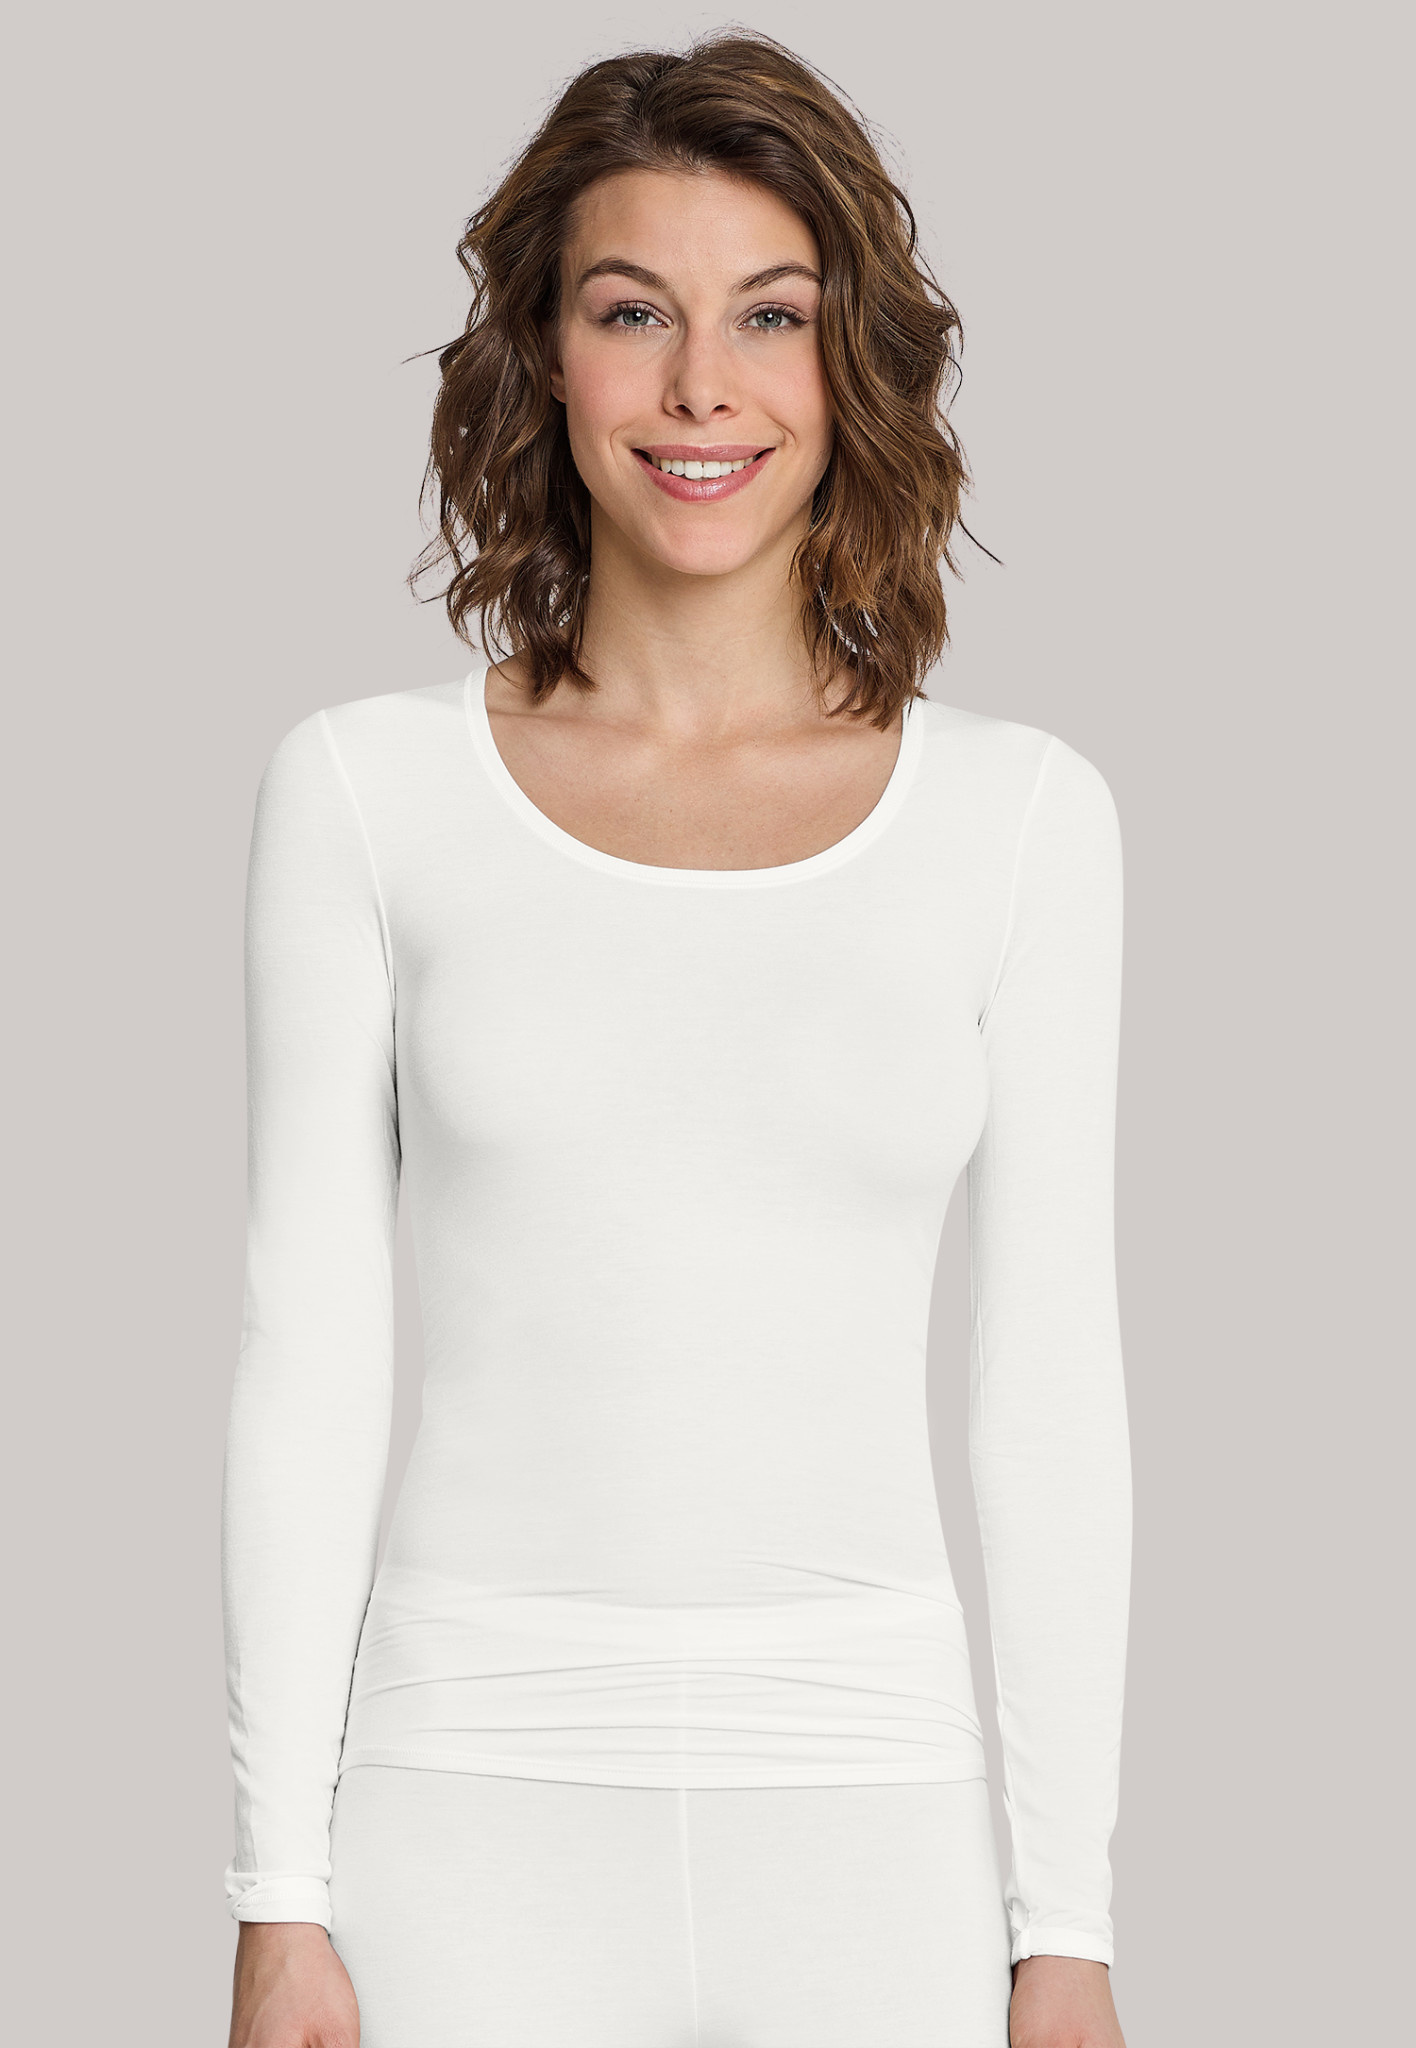 T-shirt Personal Fit lange mouw 155414 - offwhite-1